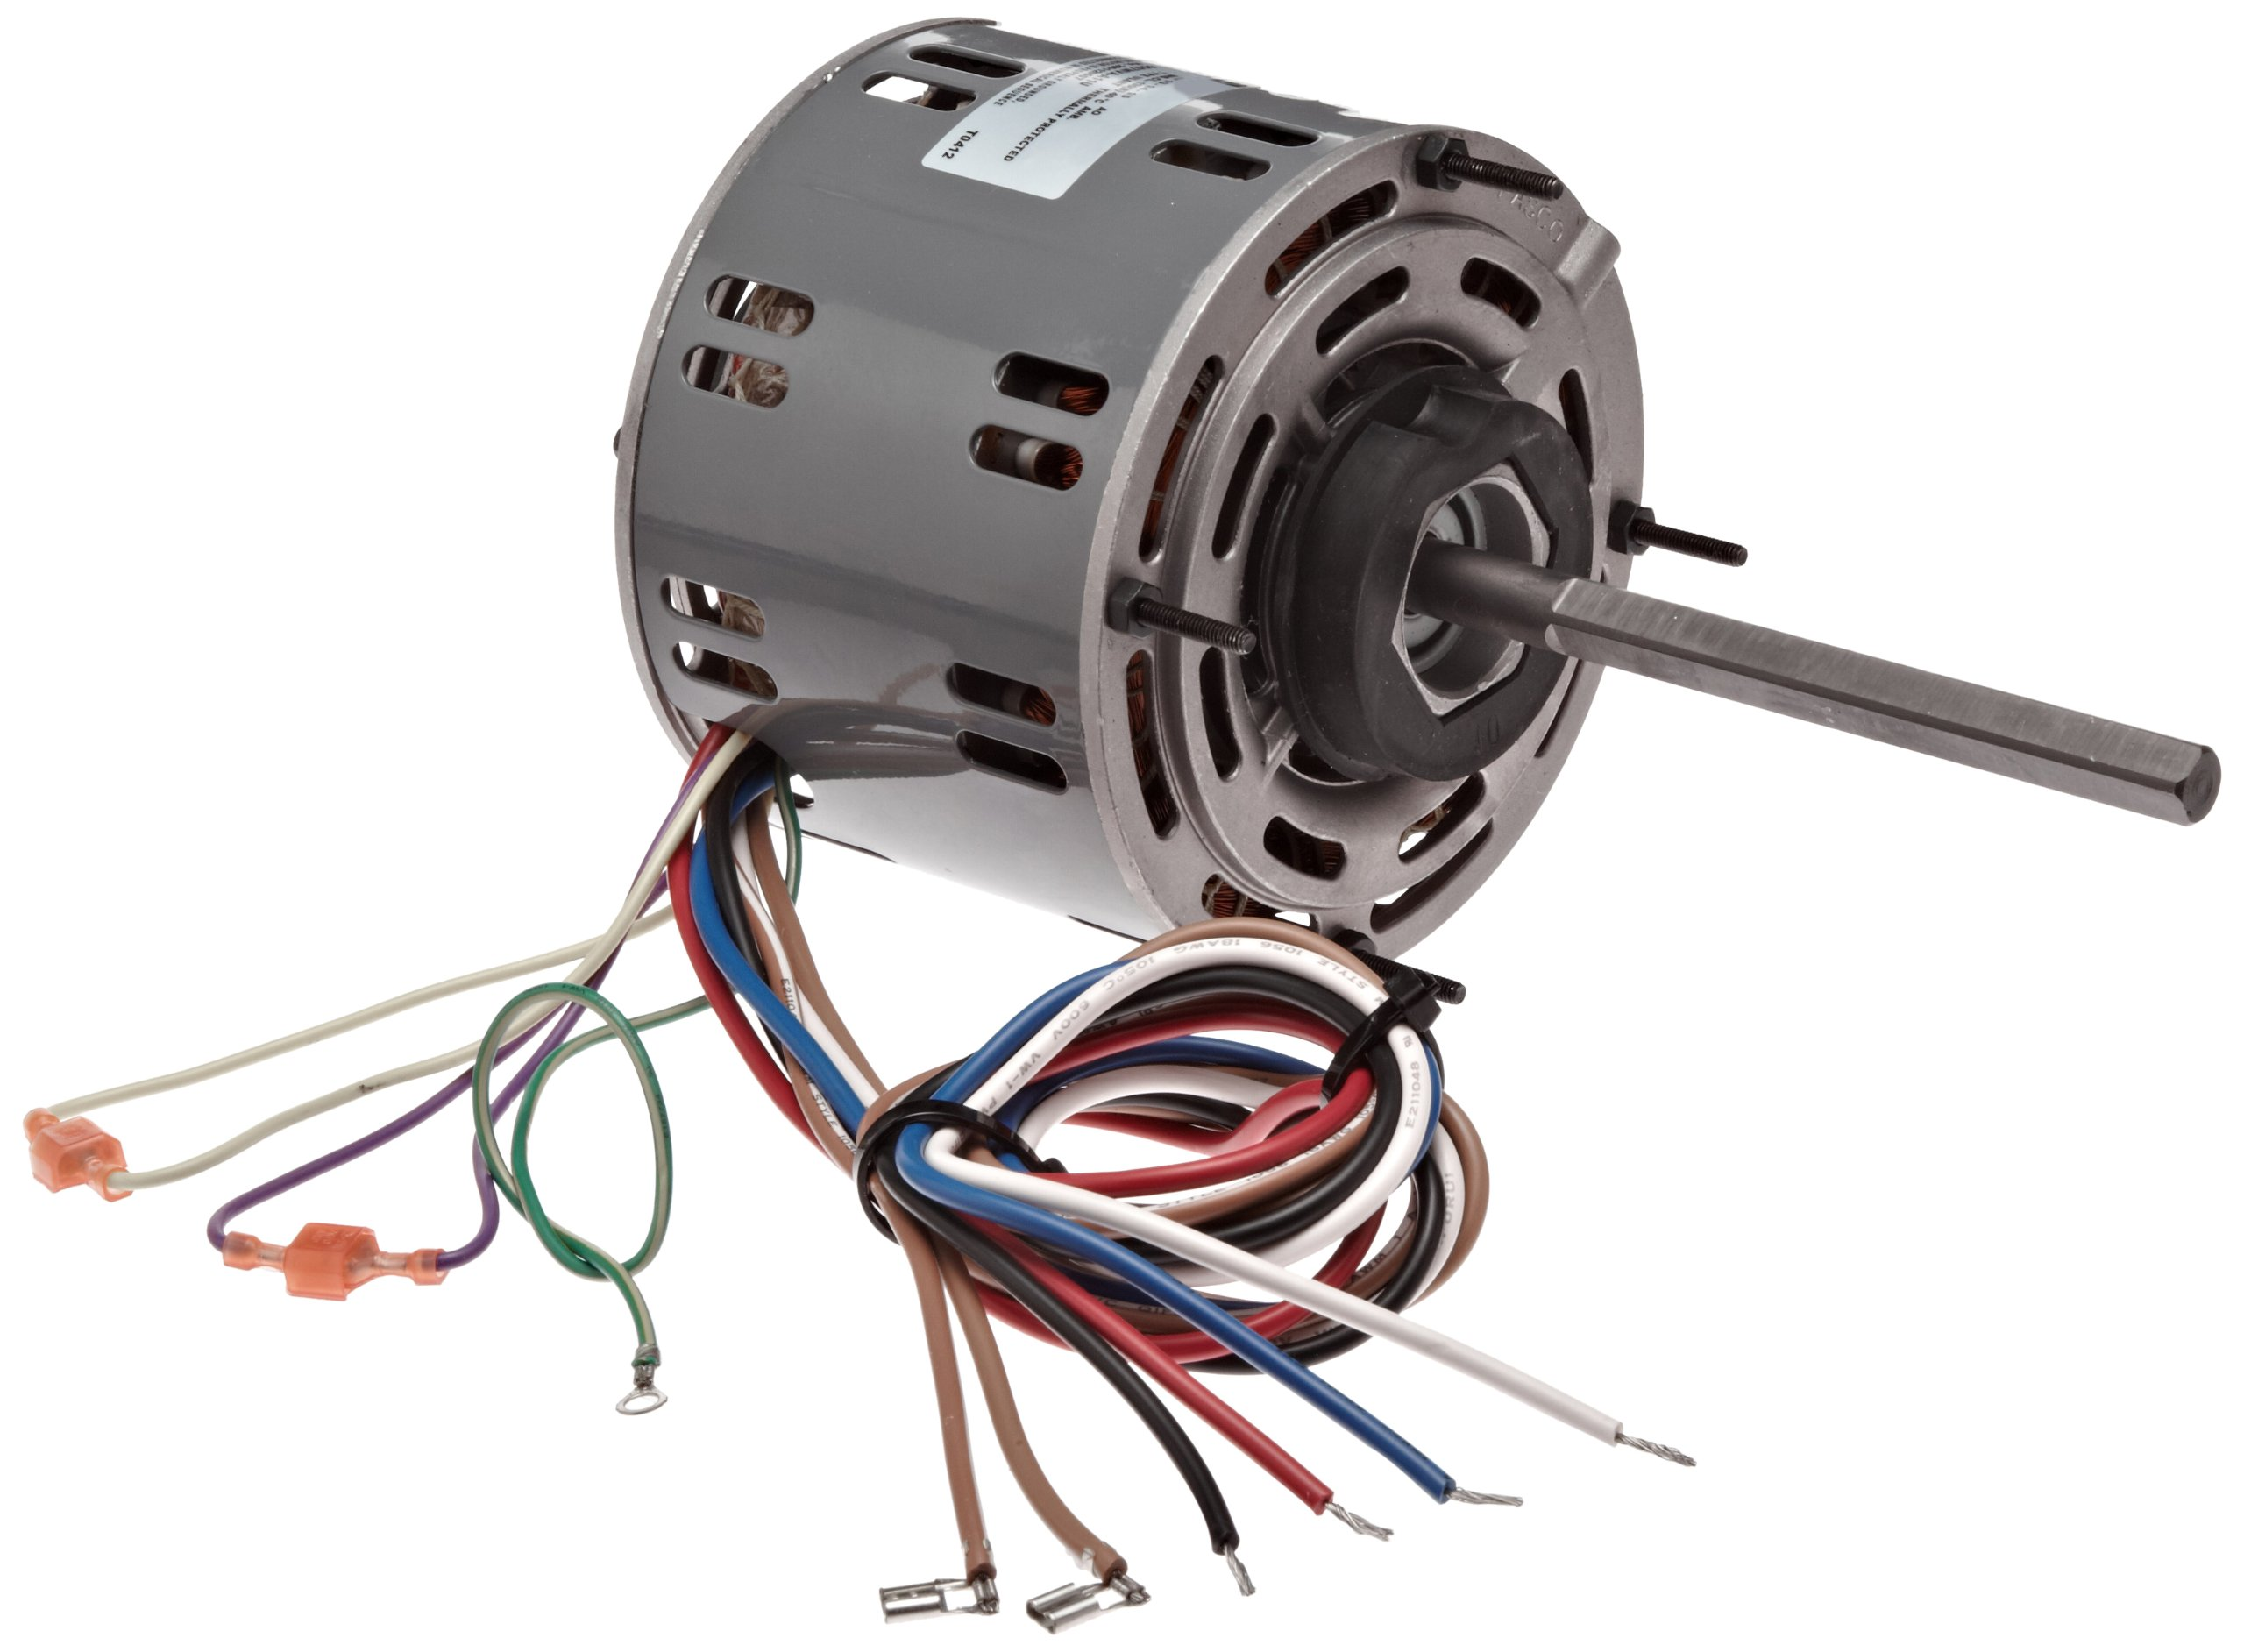 Fasco D727 5.6'' Frame Open Ventilated Permanent Split Capacitor Direct Drive Blower Motor with Sleeve Bearing, 1/3-1/4-1/5HP, 1075rpm, 115V, 60Hz, 5.9-4.6-3.8 amps